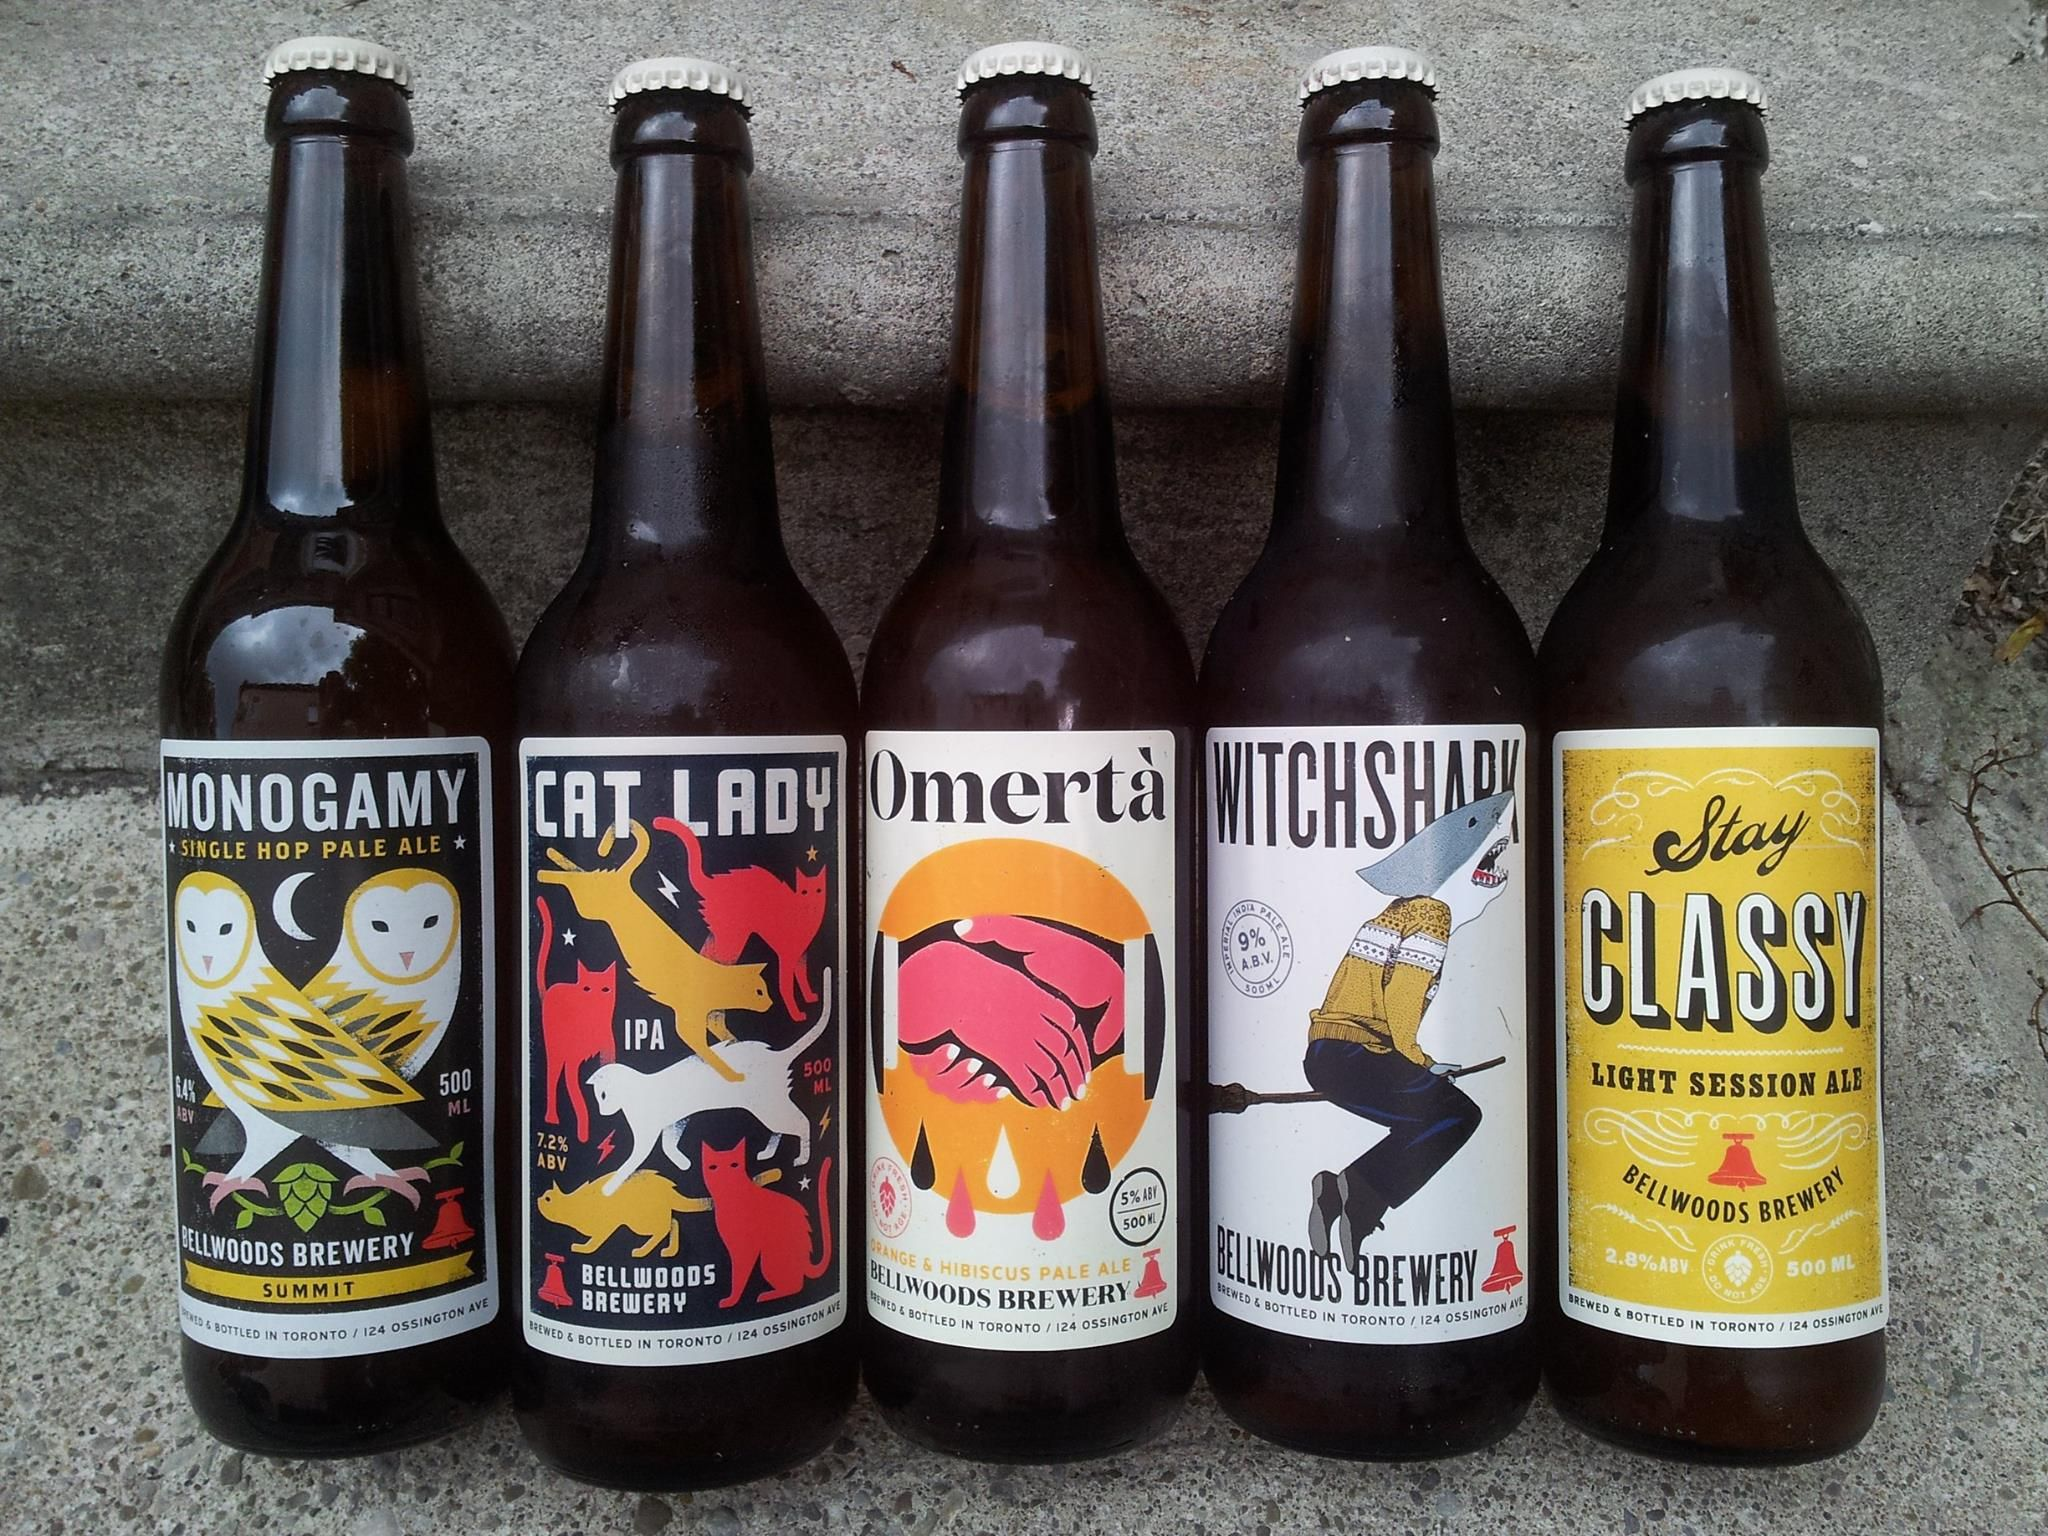 bellwoods brewery labels Google Search bellwoods